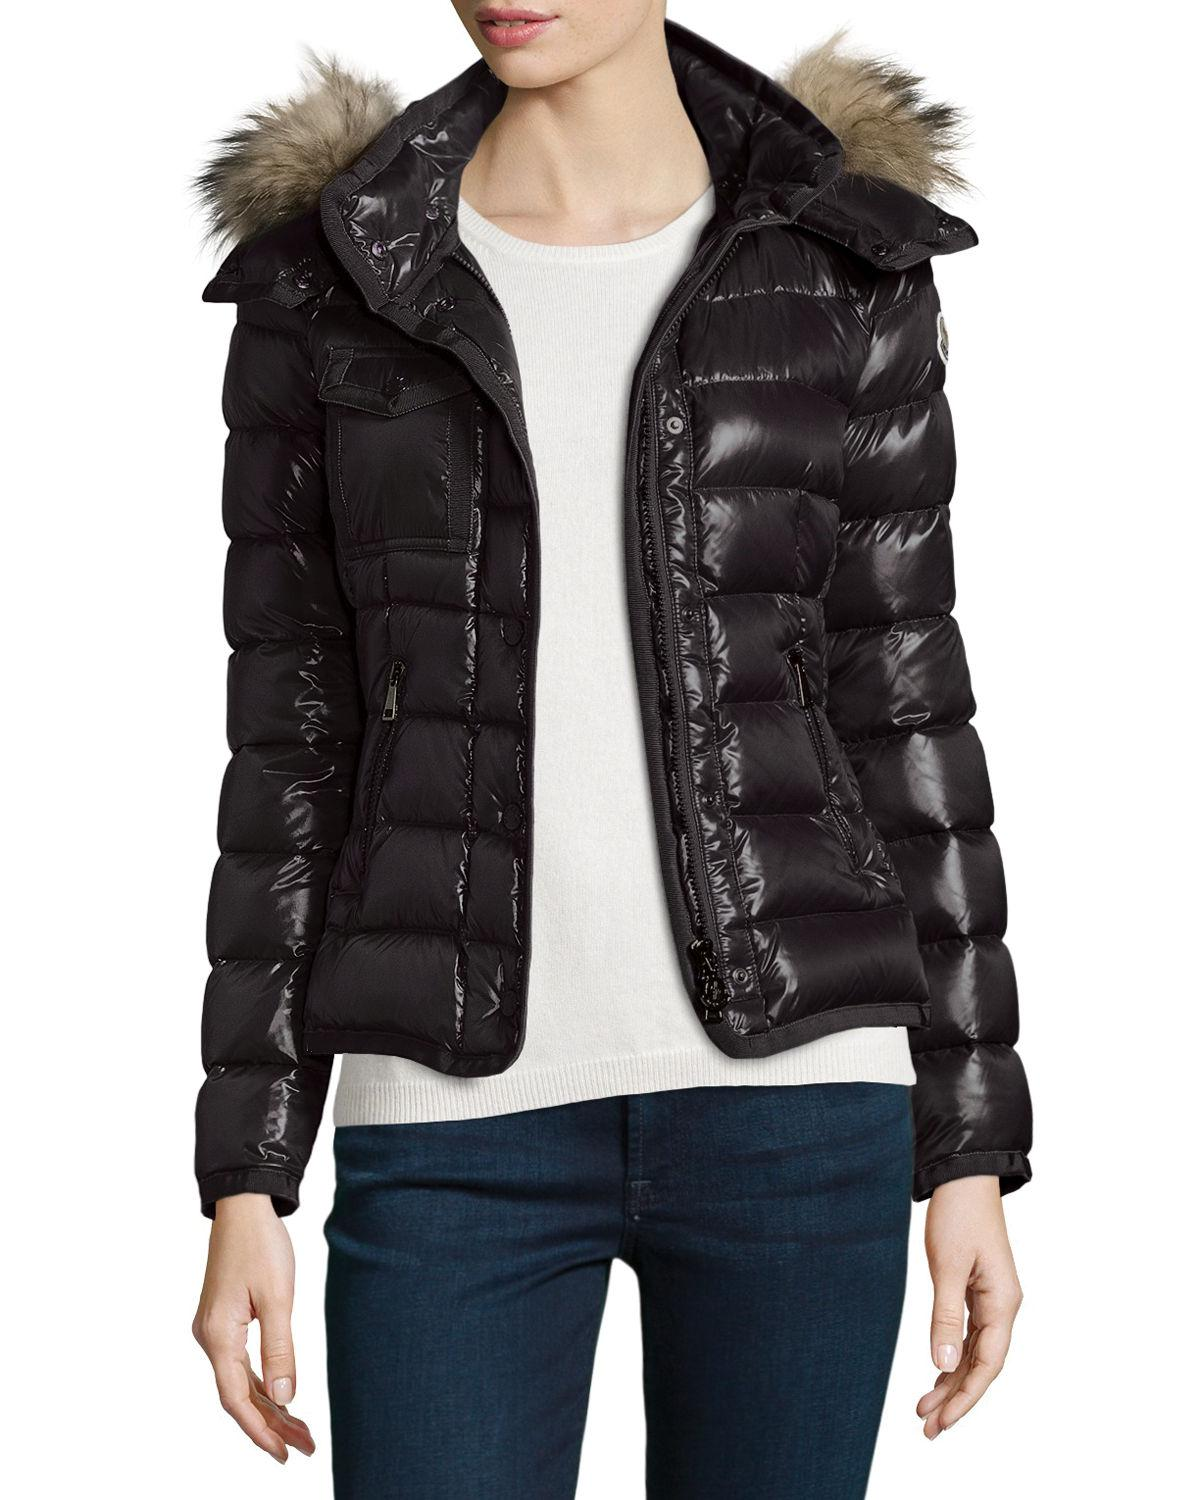 6a1d325e1 Lyst - Moncler Armoise Shiny Quilted Jacket in Black - Save 3%